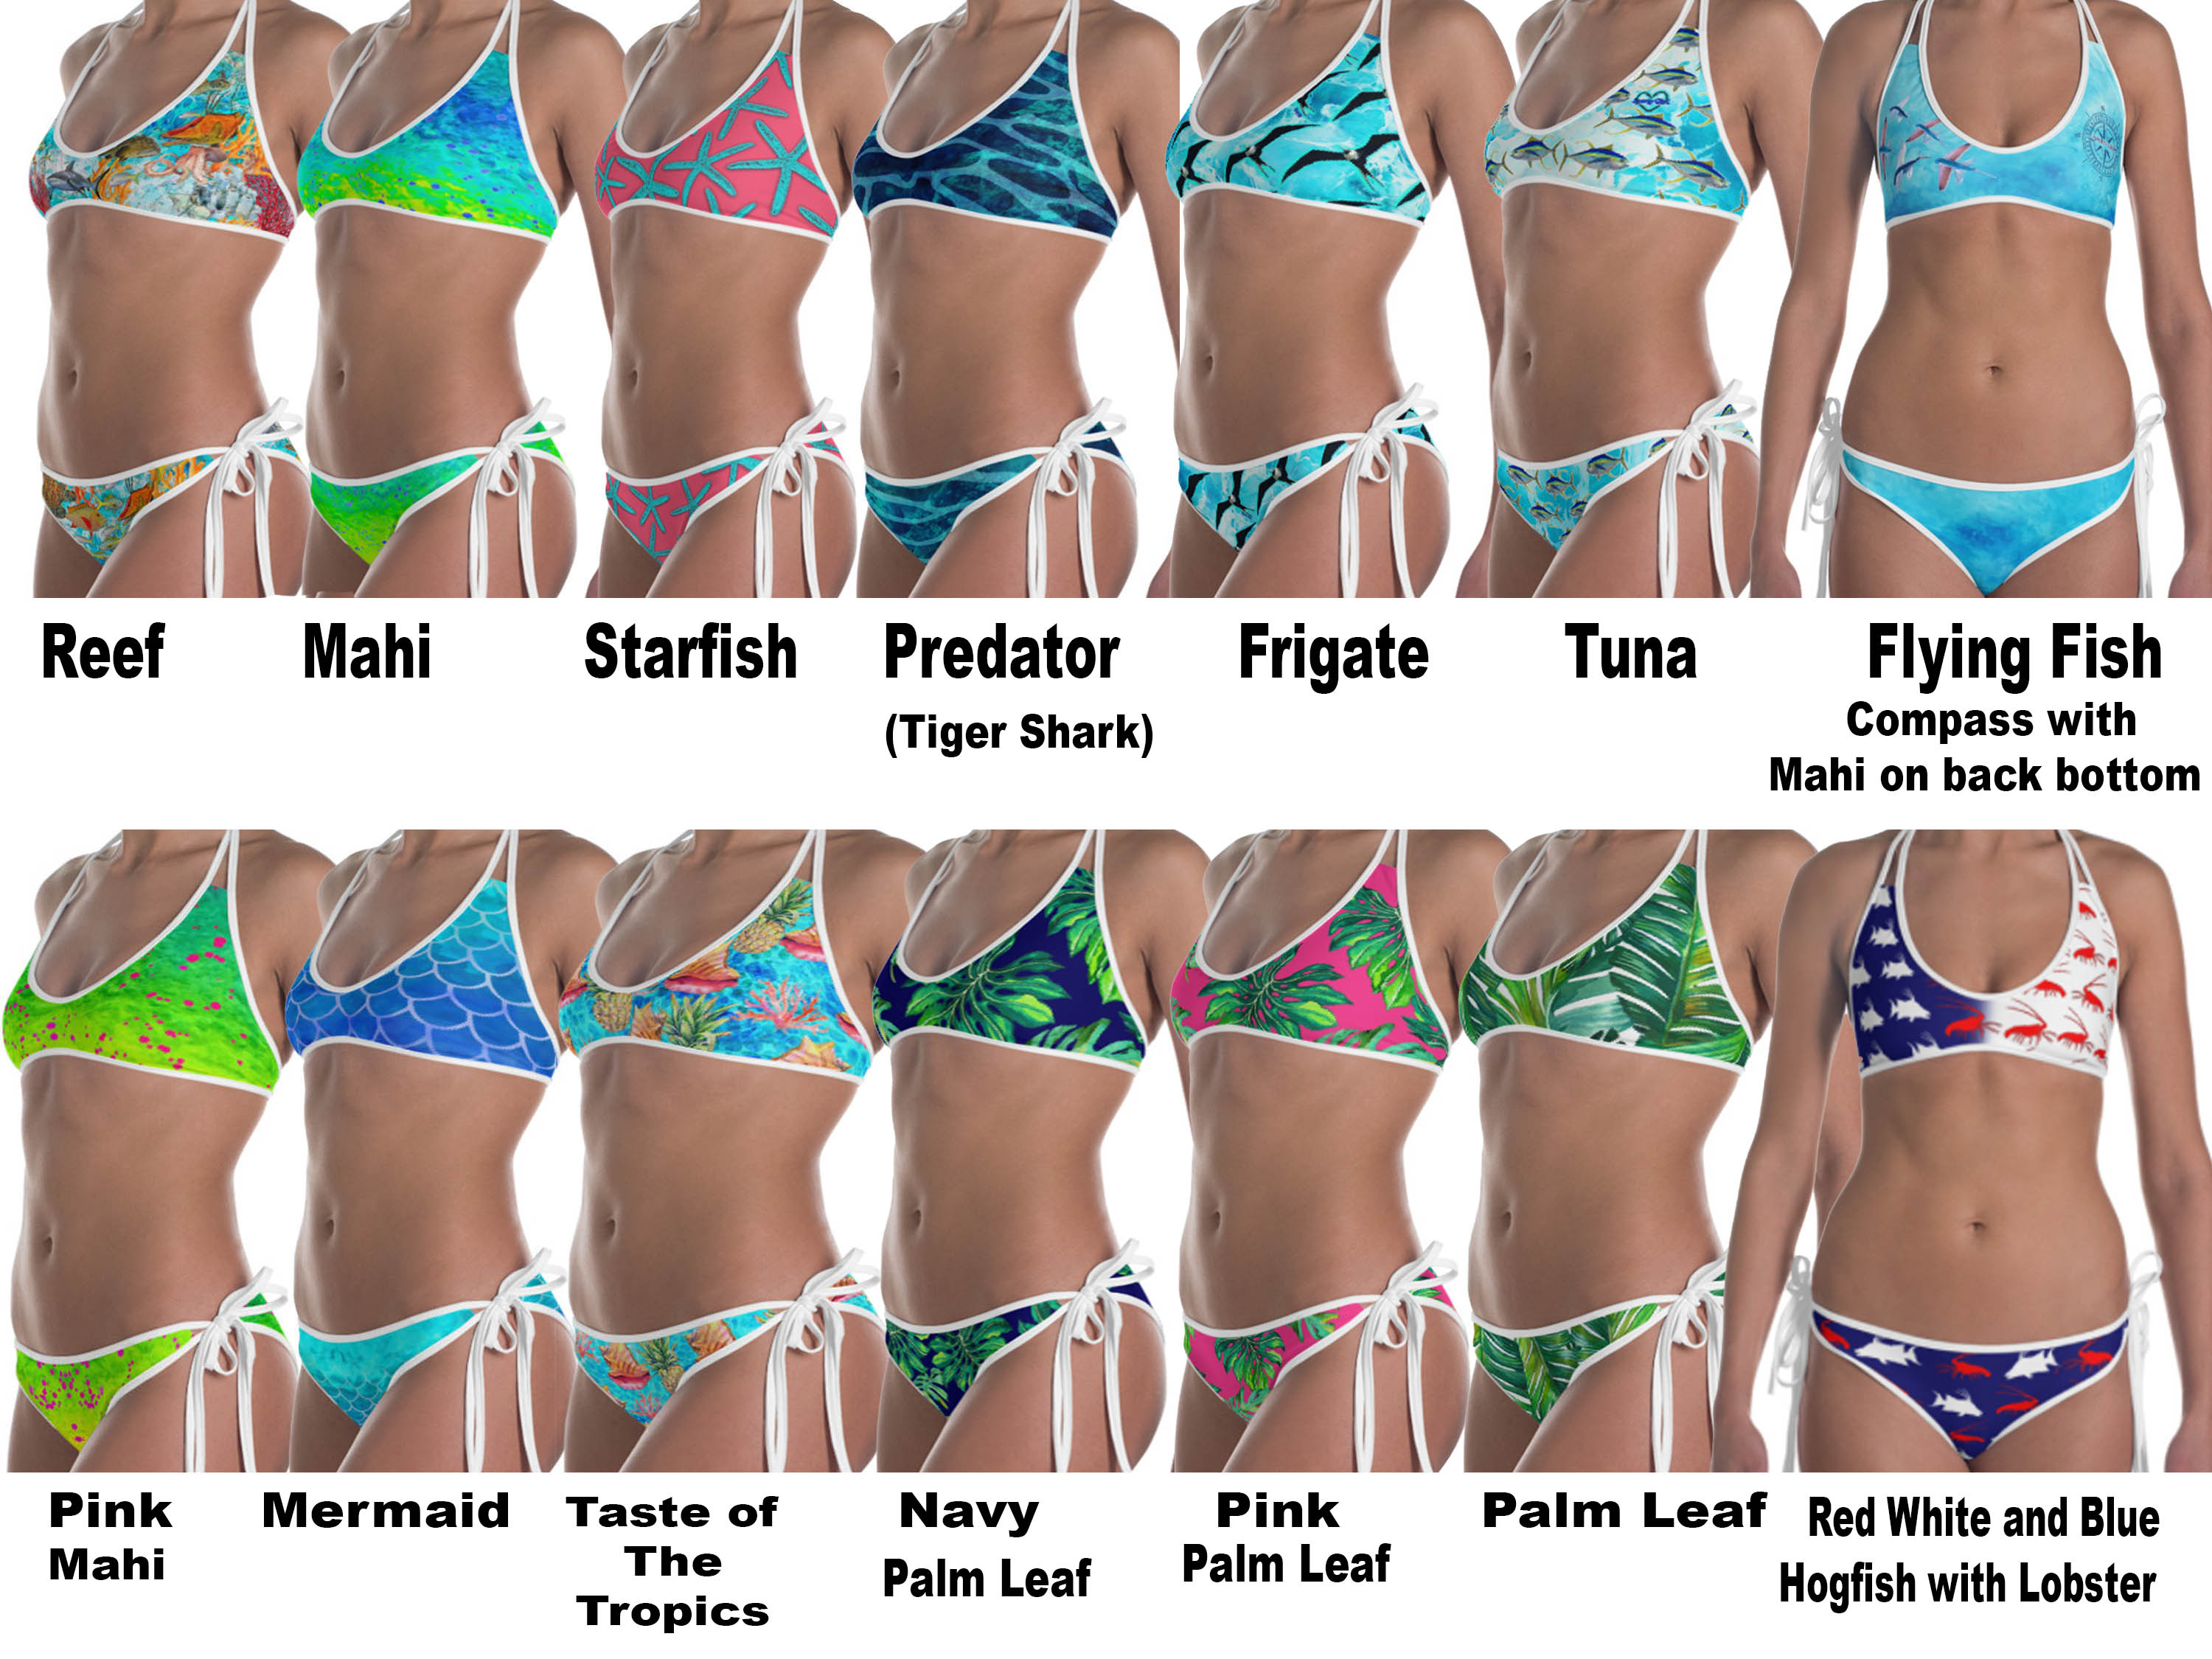 reversible-bikini-guide-fishing-bikinis-tropical-bikinis-florida-keys-bahamas-vacation-jupiter-fl-.jpg